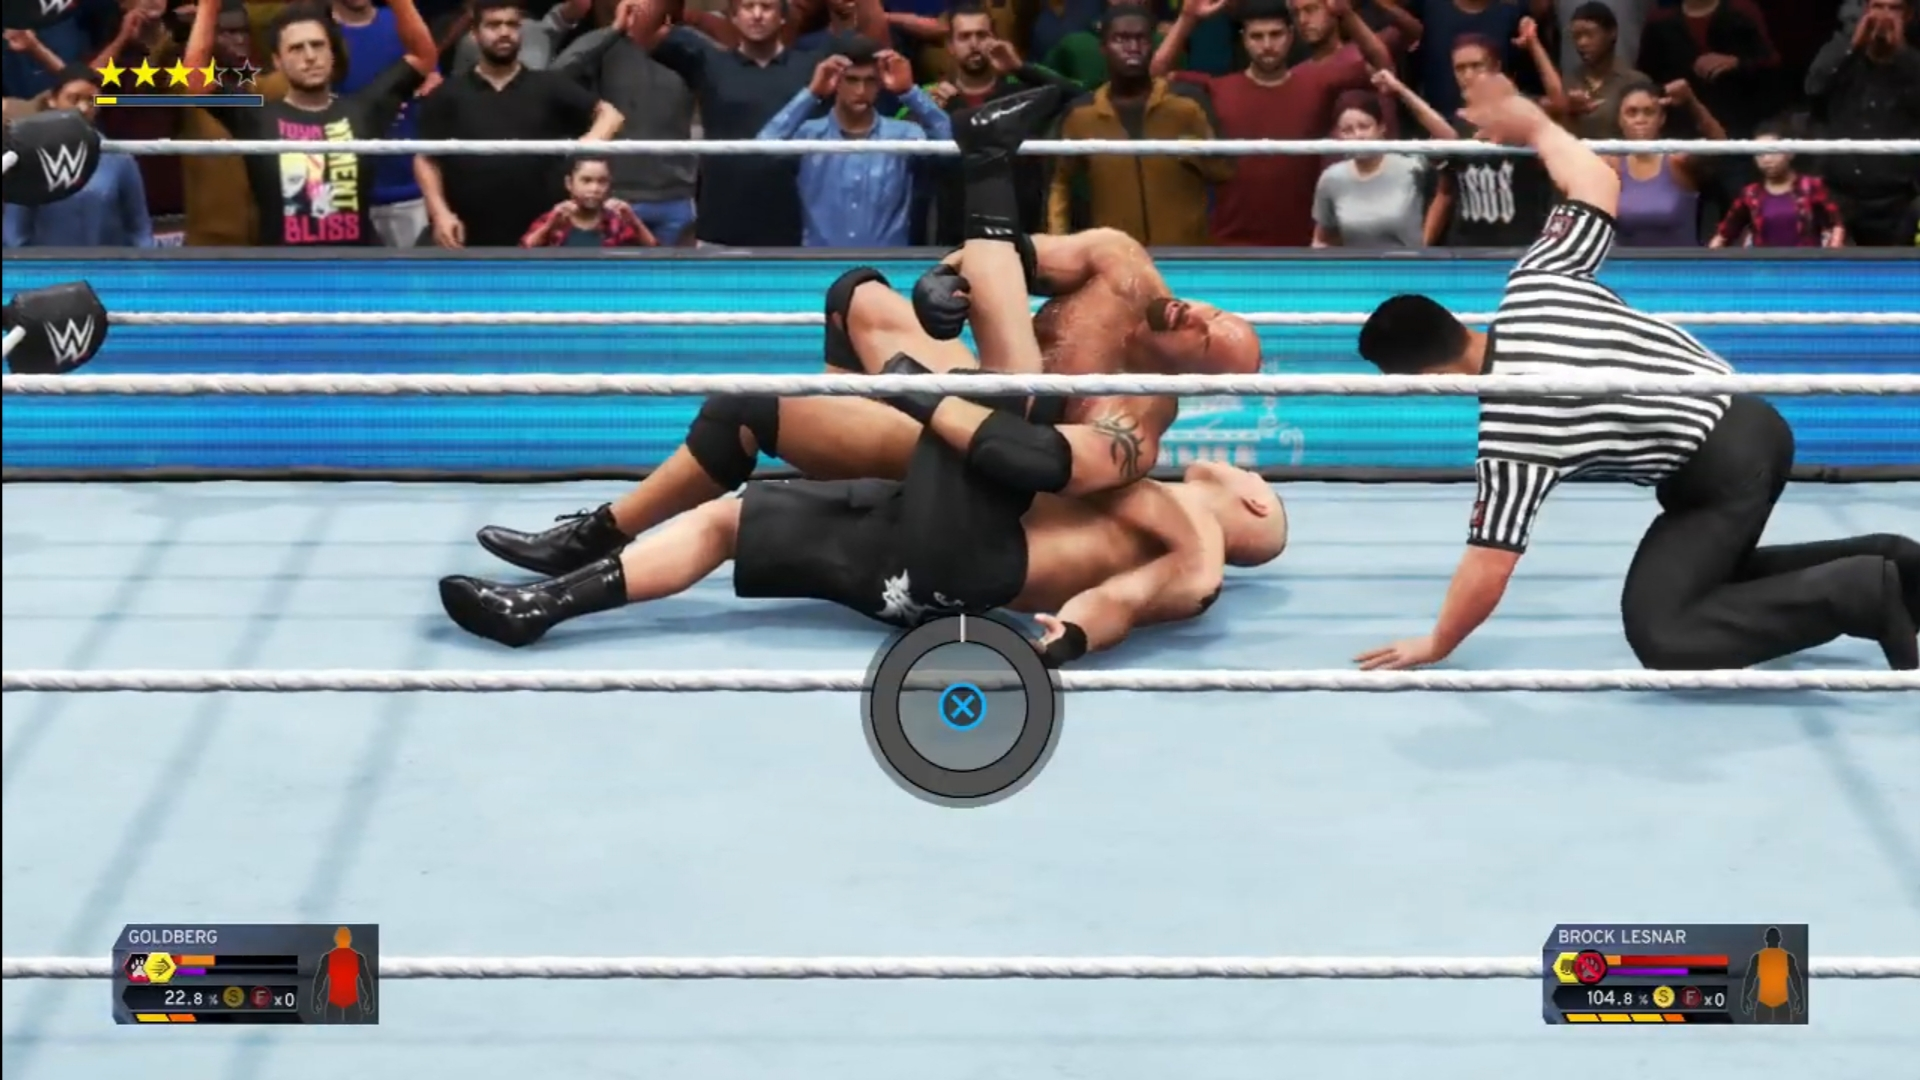 WWE 2K20 Highly Compressed for PC